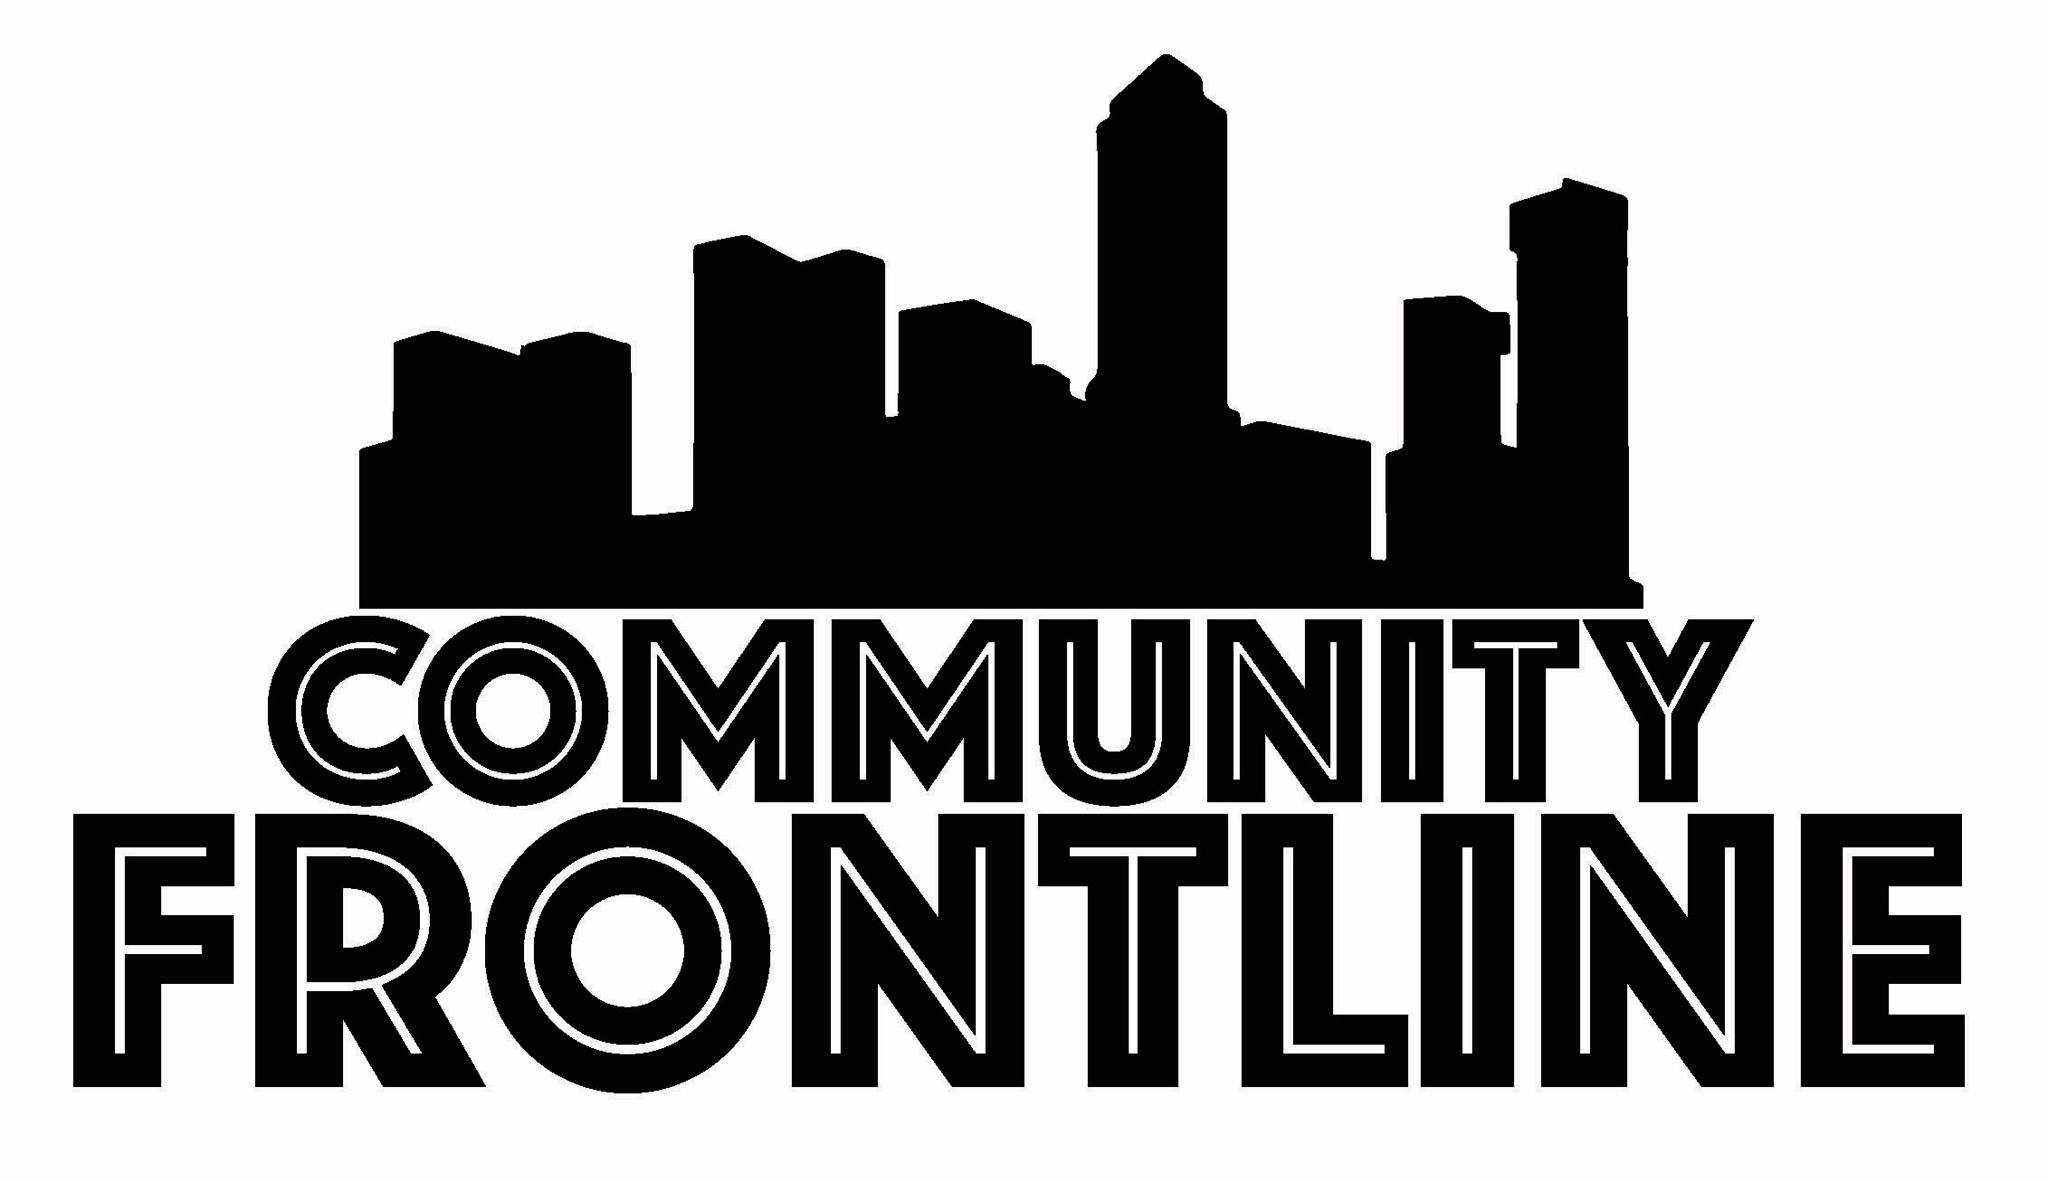 CommUnity Frontline | Fort Worth TX